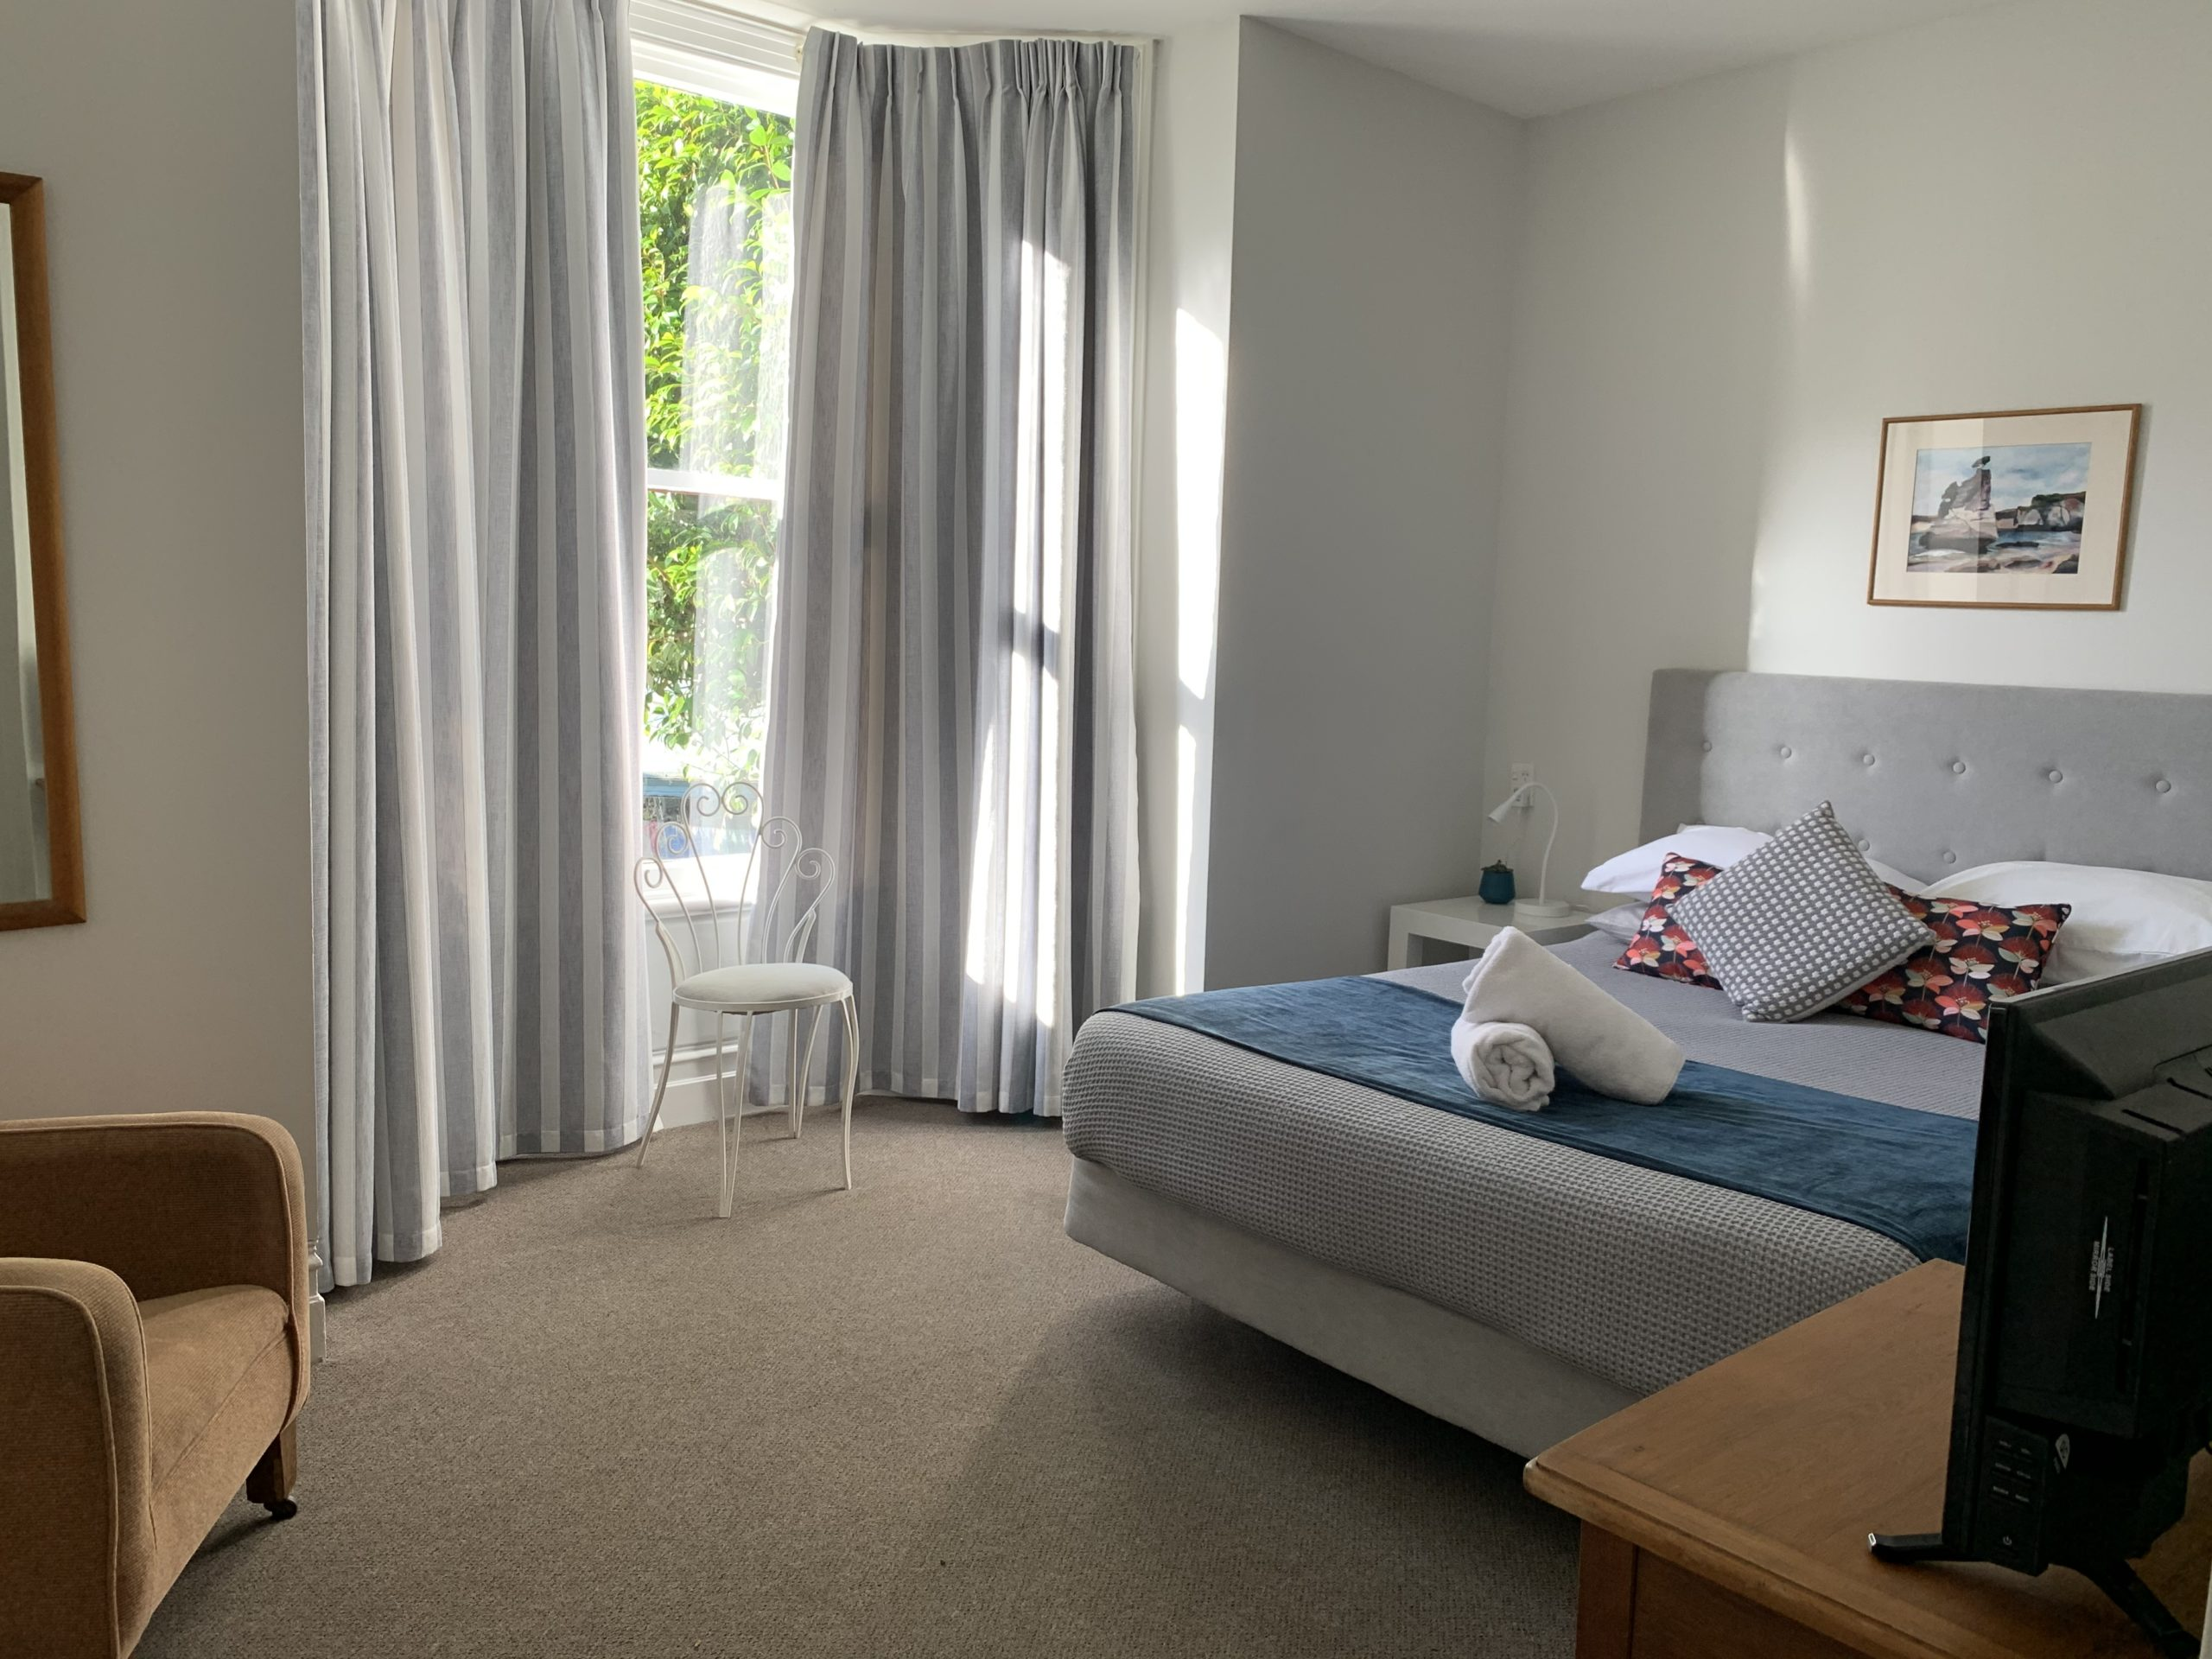 Private Rooms At The Villa Backpackers Lodge In Picton Marlborough NZ